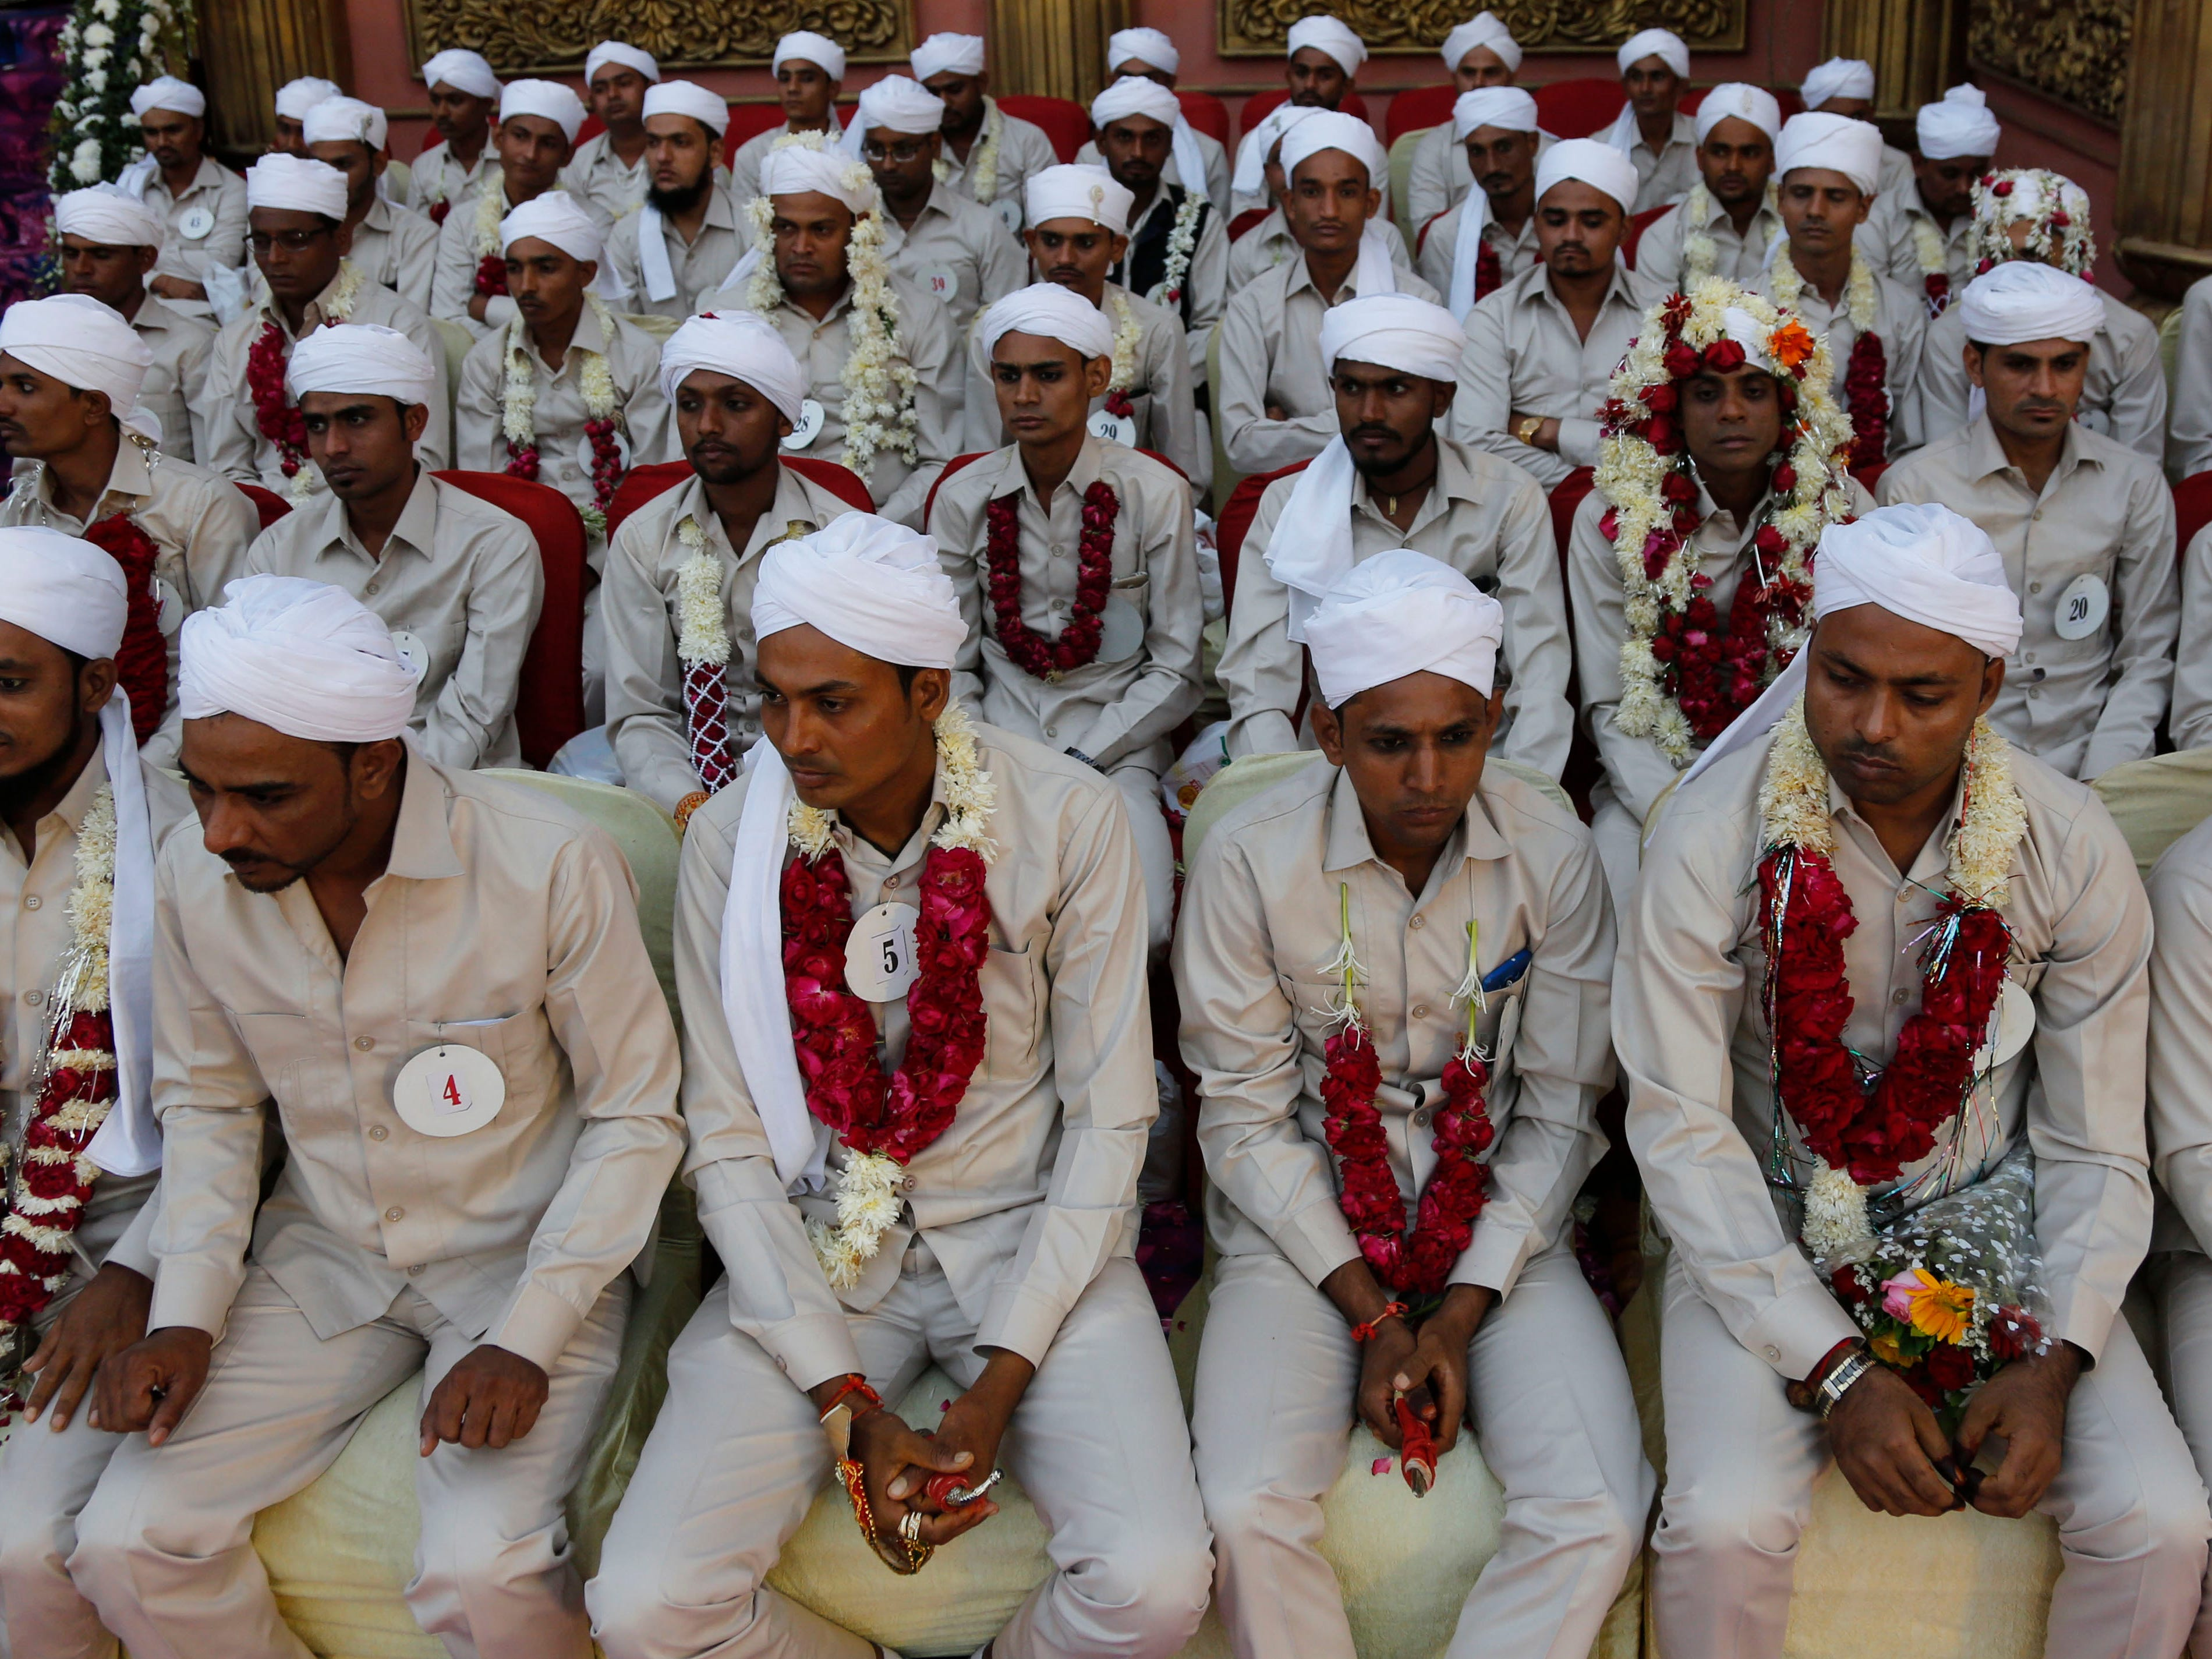 Muslim grooms sit during a mass wedding where 65 couples were married in Ahmadabad, India, Monday, Dec. 3, 2018.